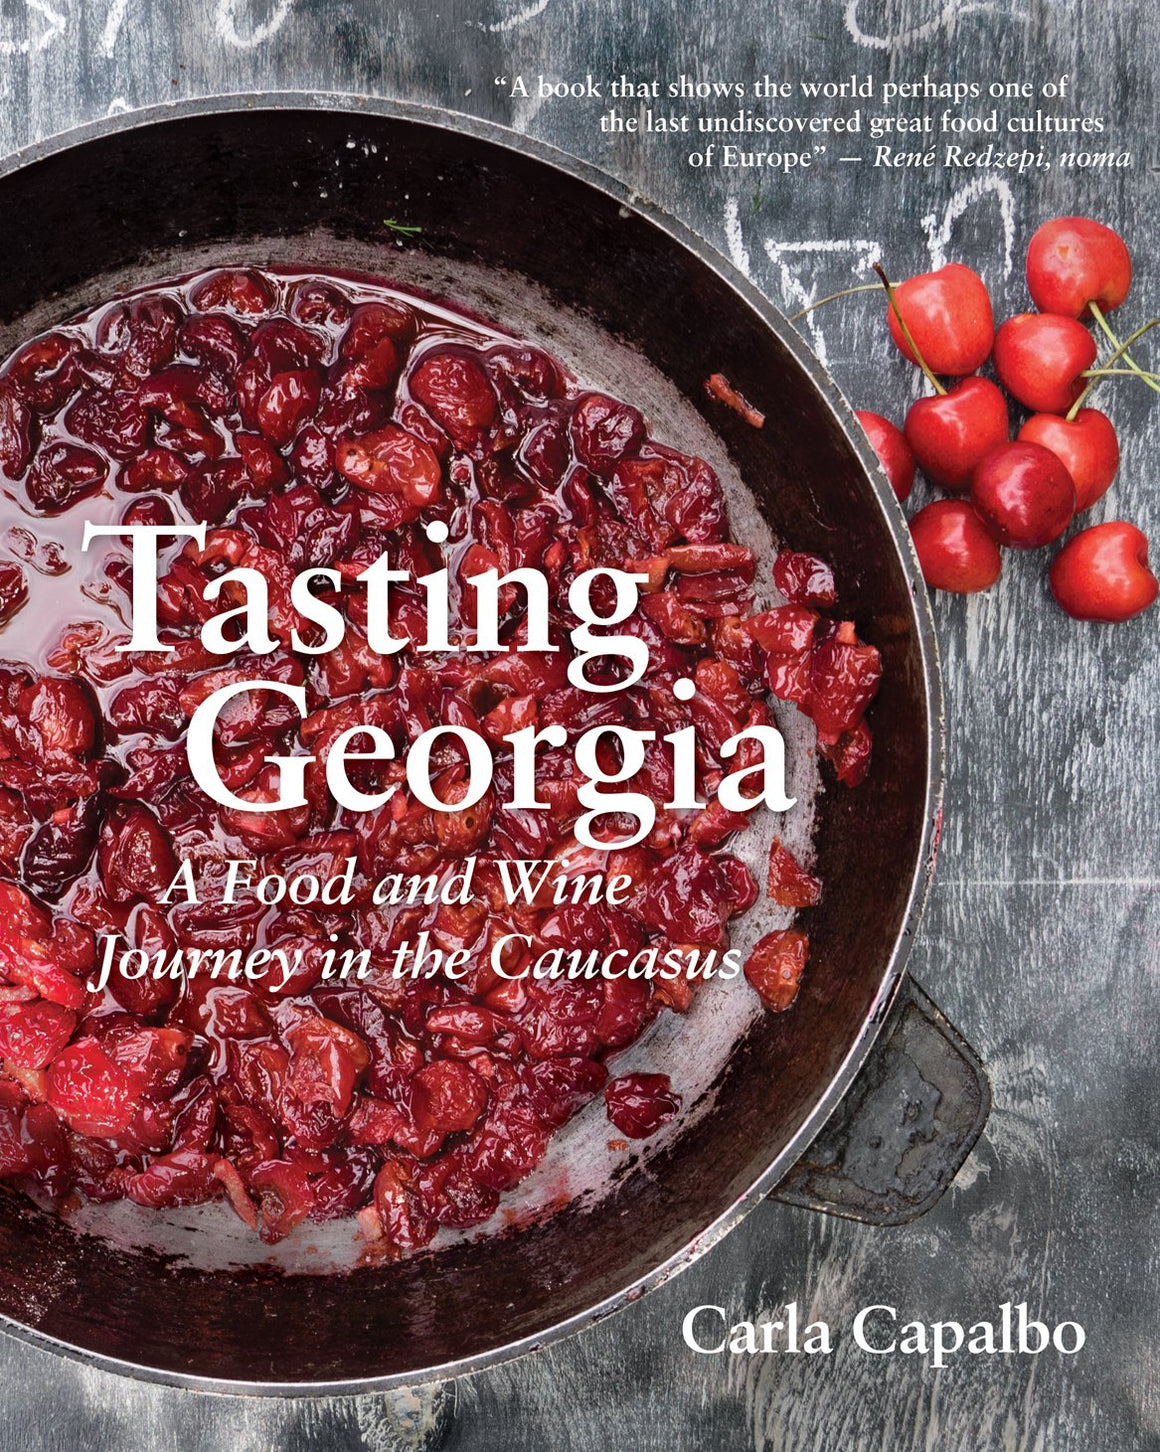 (Georgia) Carla Capalbo. Tasting Georgia: A Food and Wine Journey in the Caucasus